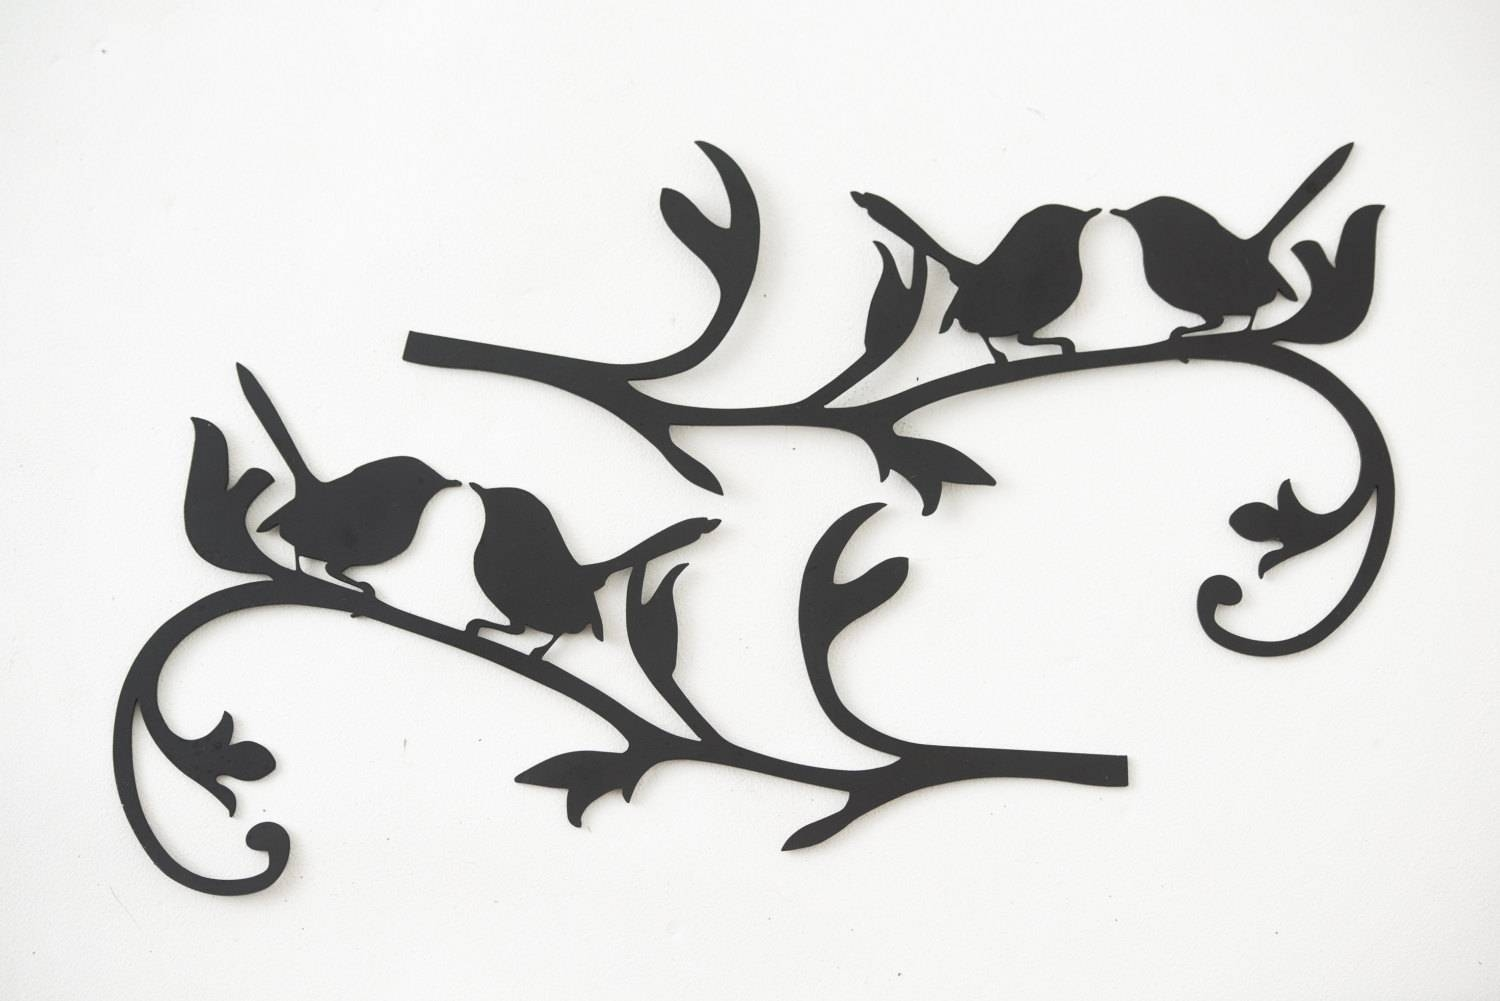 Wall Art Designs: Metal Bird Wall Art Hand Drawn And Laser Cut Throughout Latest Flying Birds Metal Wall Art (View 12 of 25)